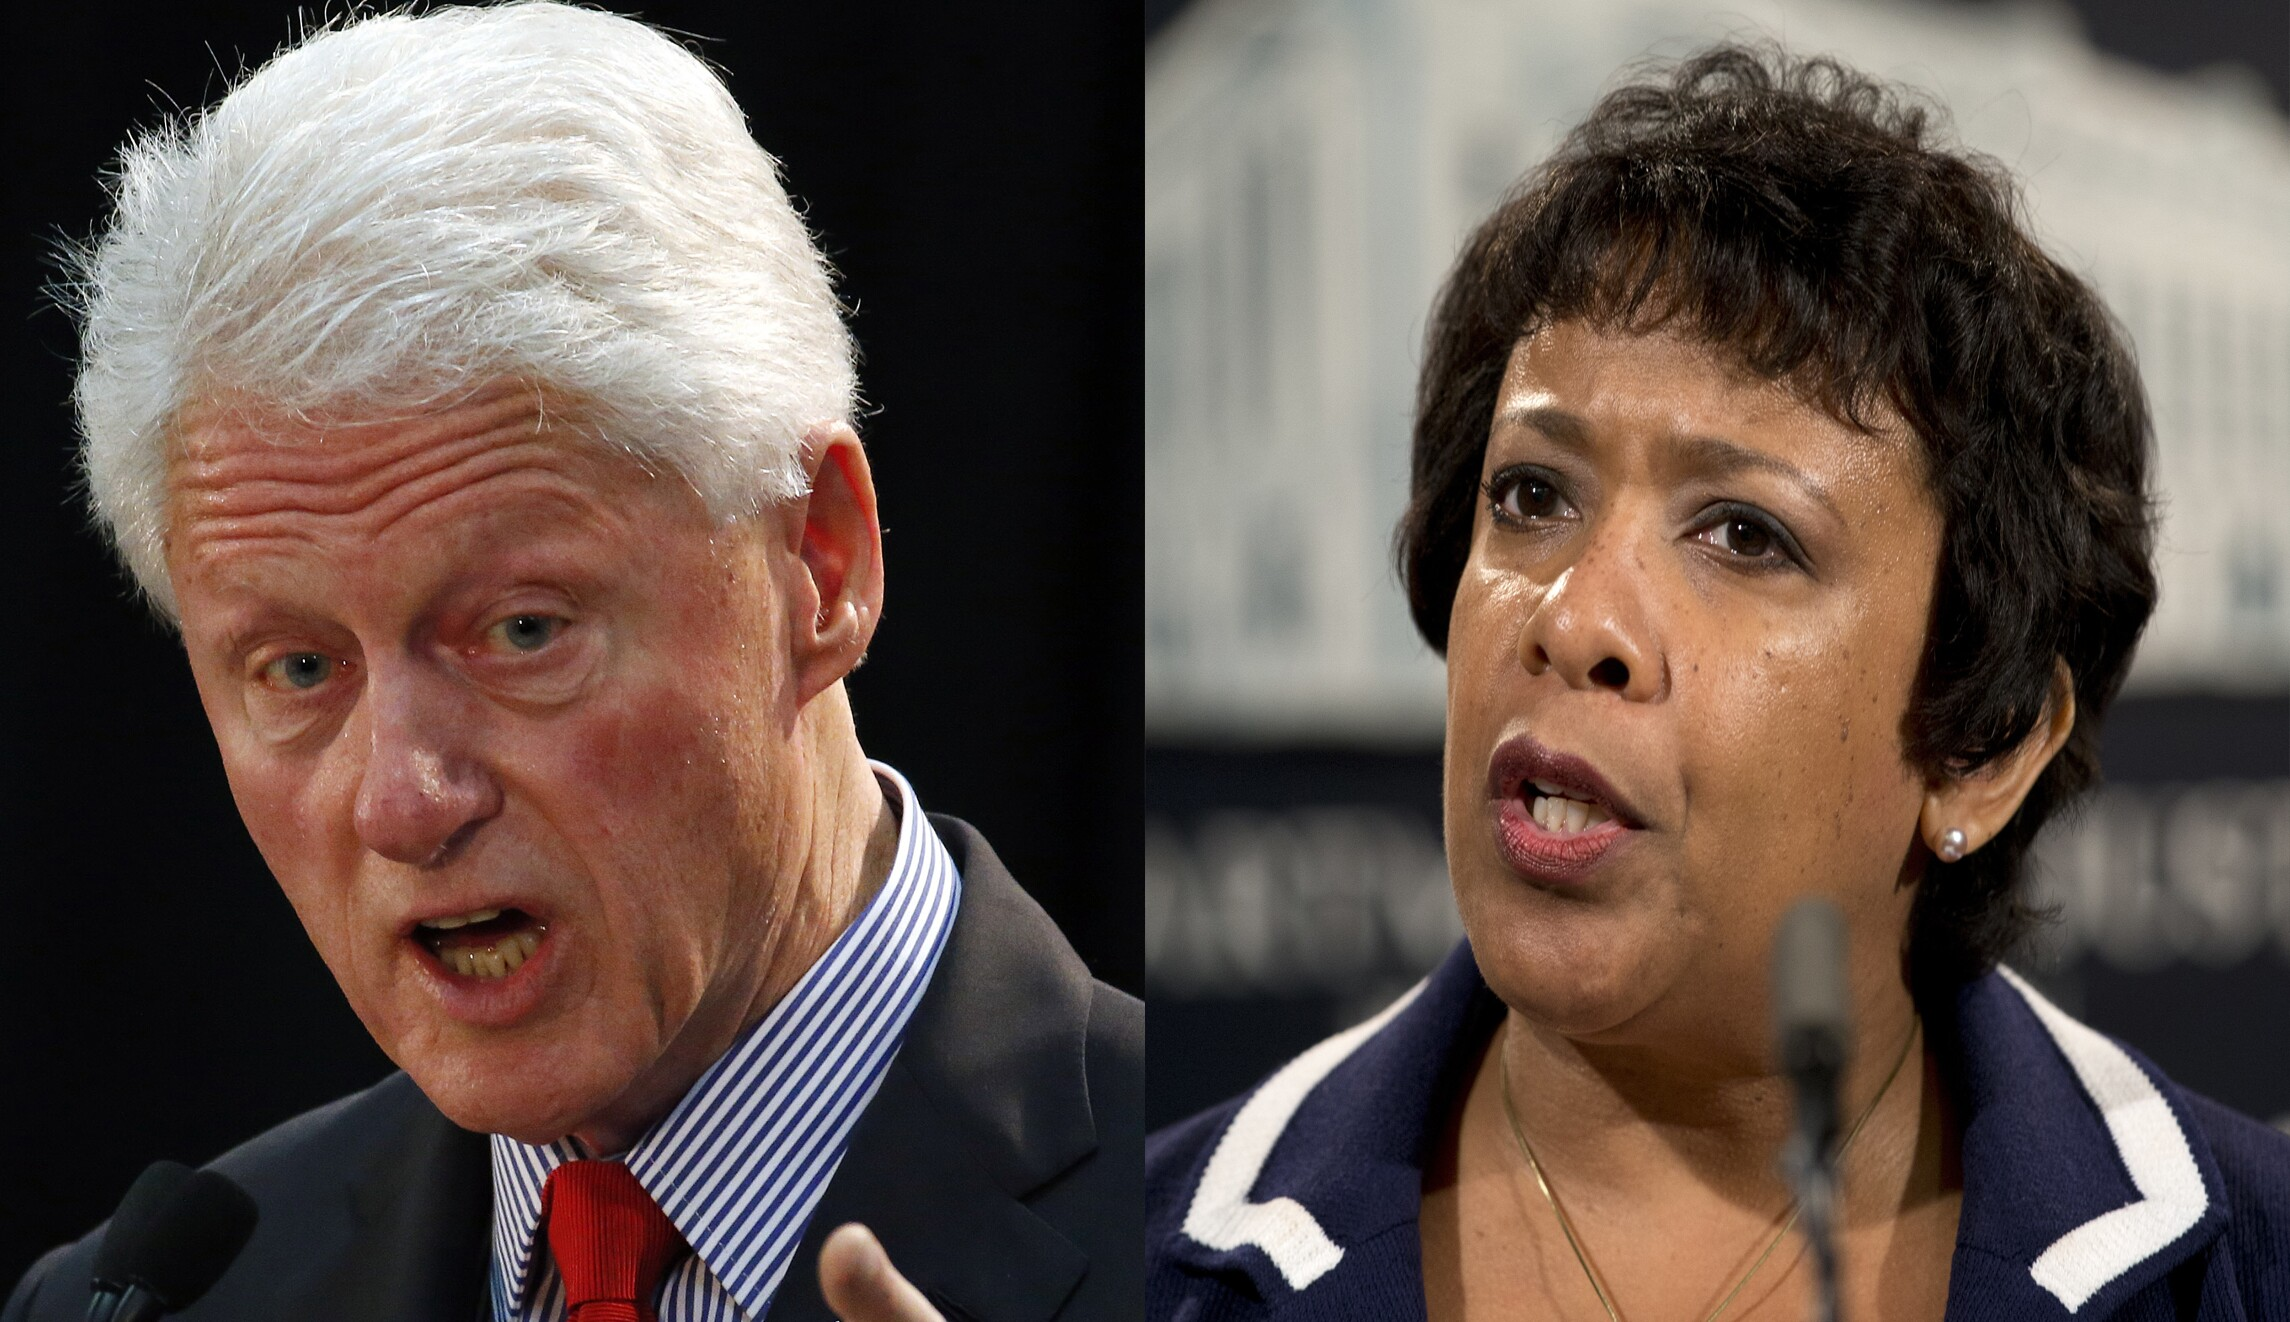 Reporters were 'reluctant' to cover the Bill Clinton/Loretta